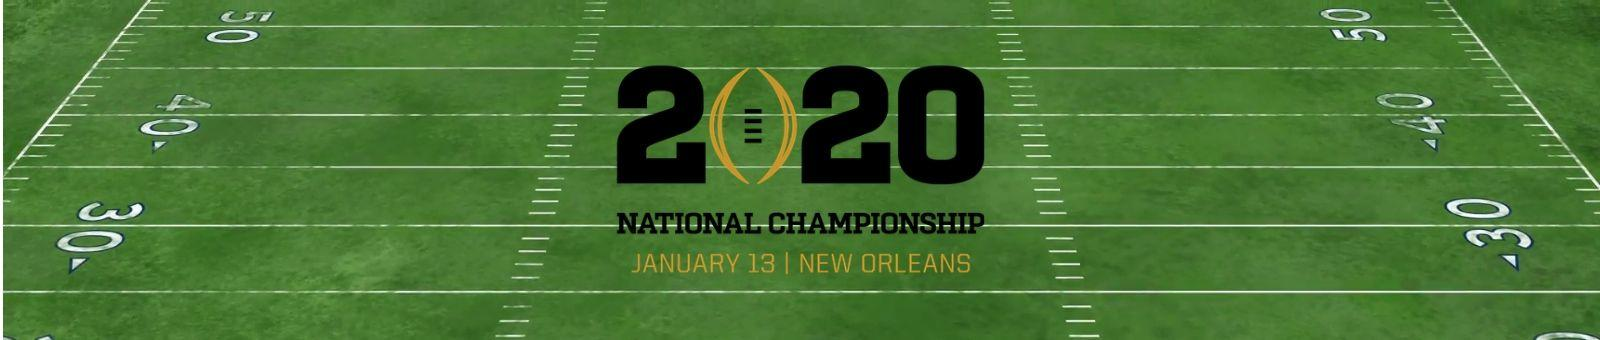 National Championship 2020 Packages